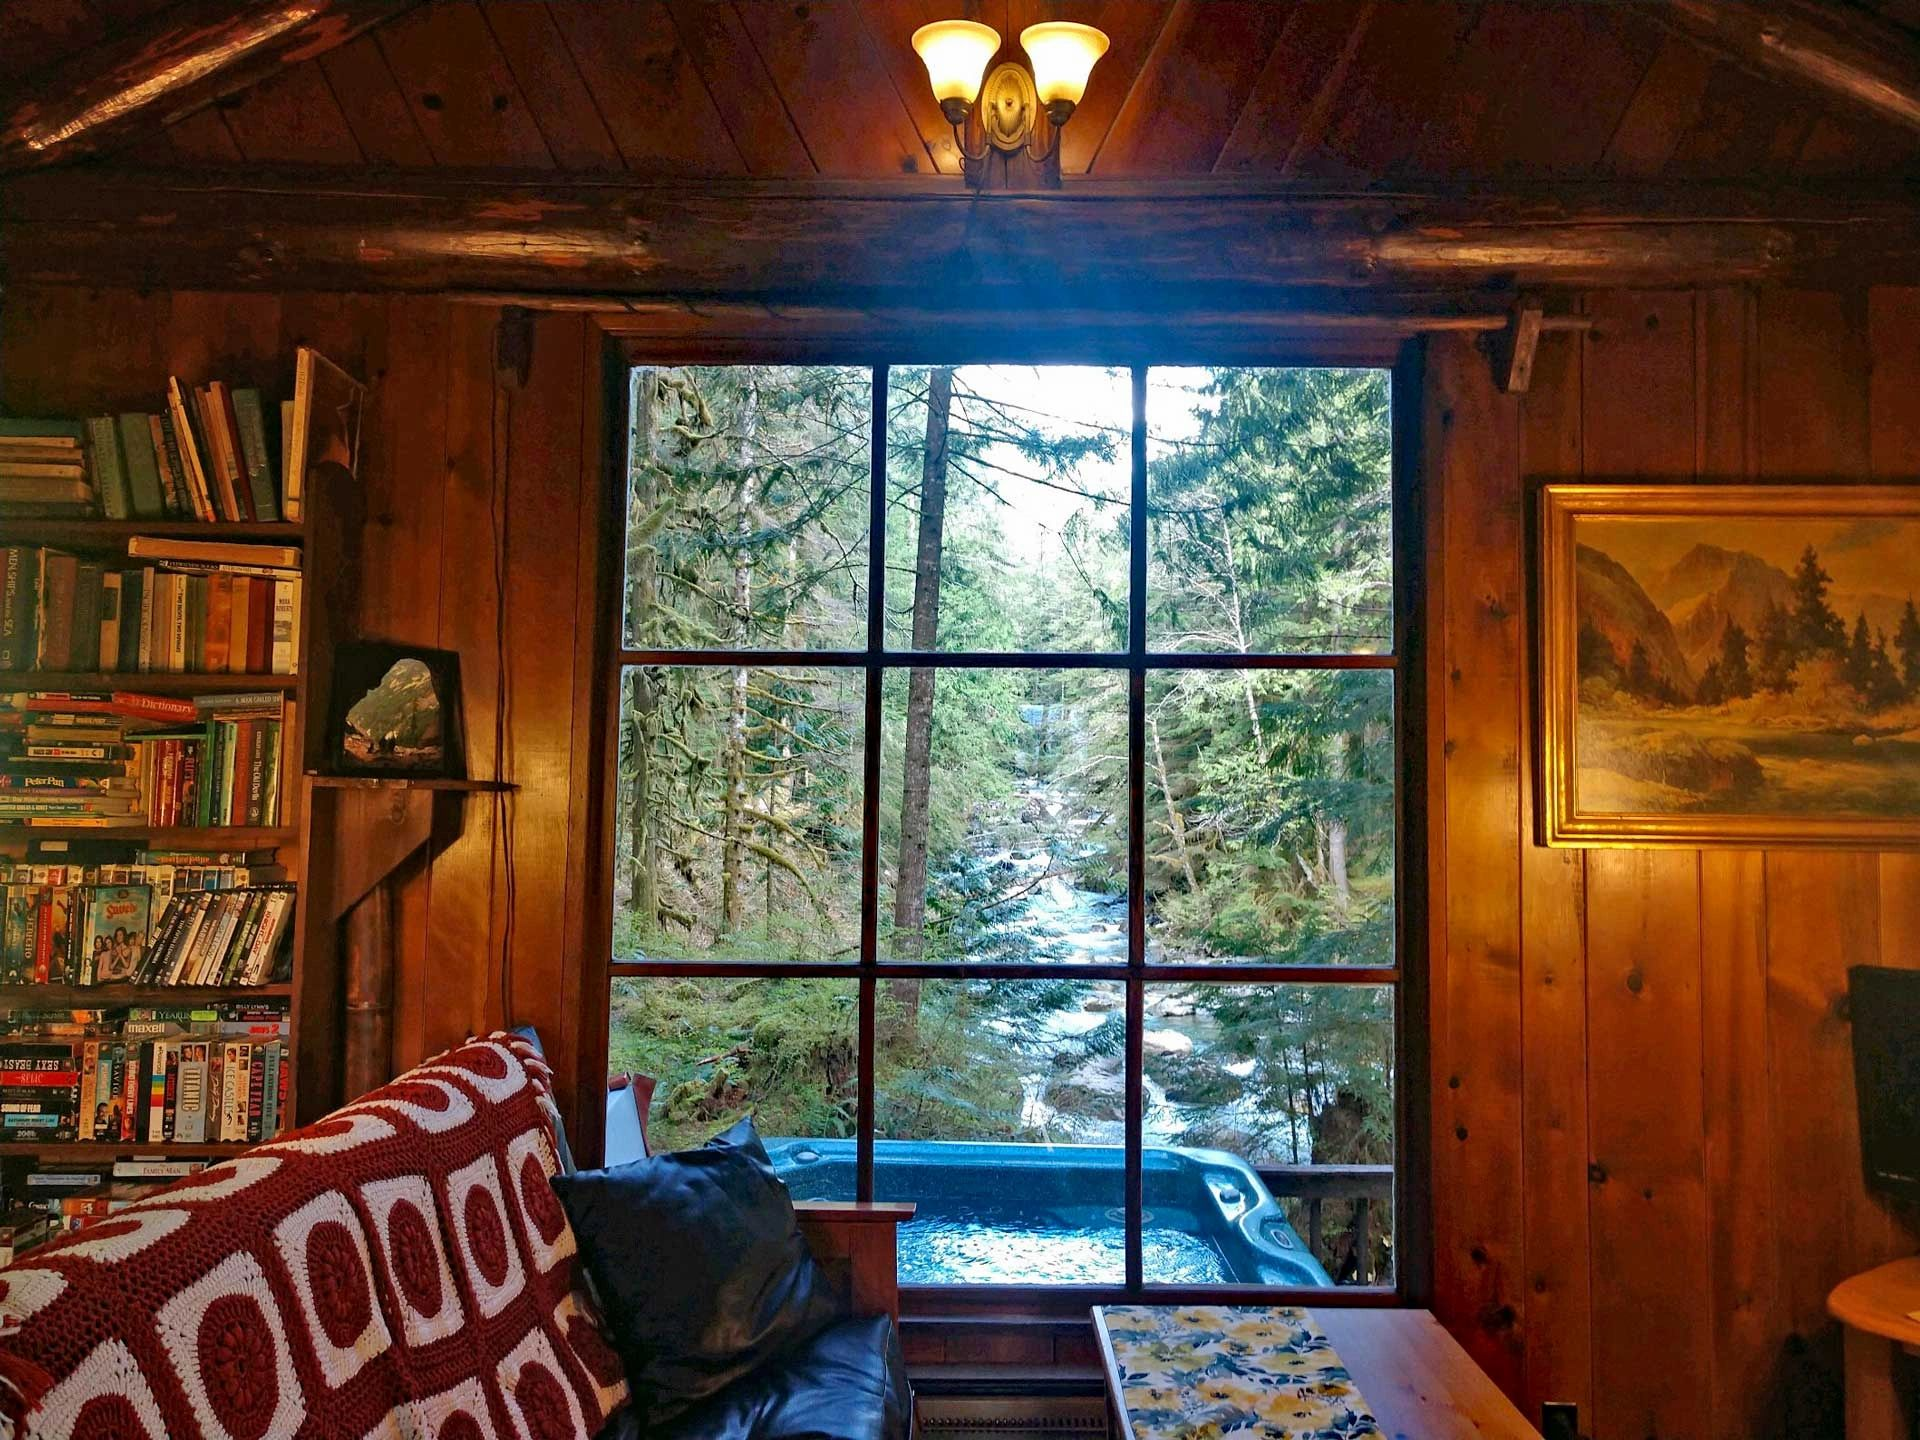 Riverfront vacation lodging cabin rental near Stevens Pass in WA State dog pet friendly with hot tub